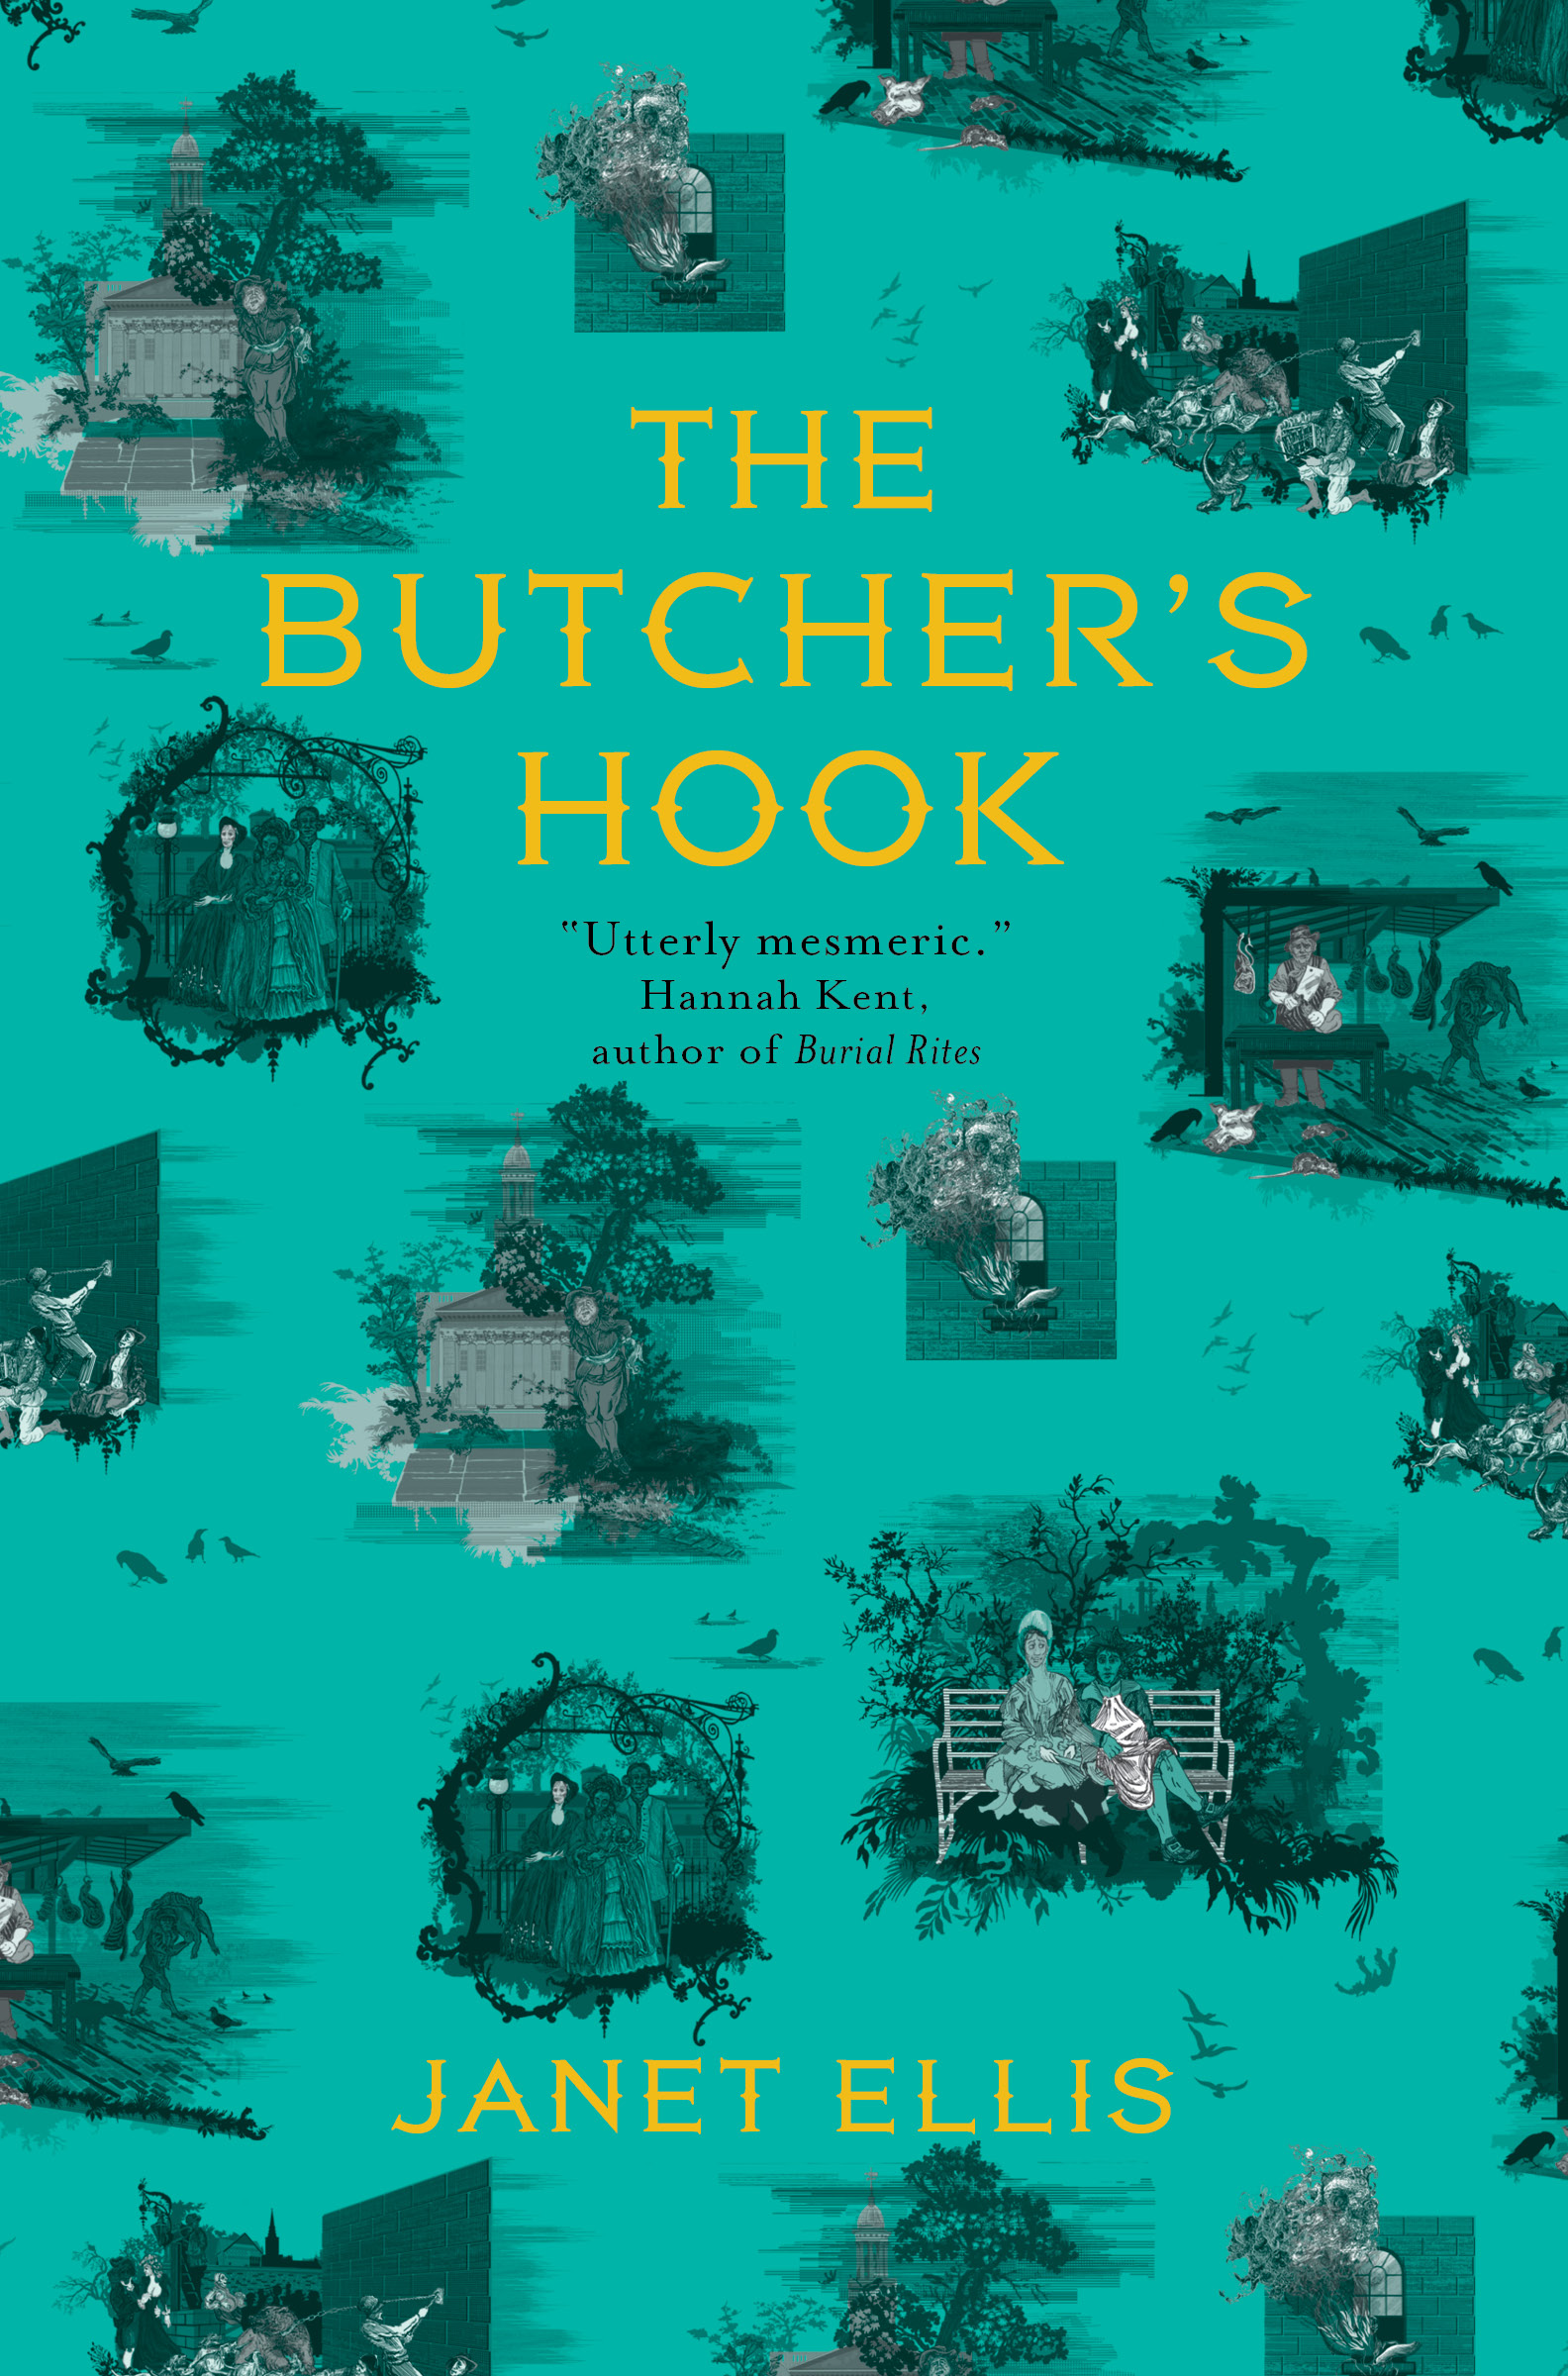 THE BUTCHER'S HOOK Written by Janet Ellis